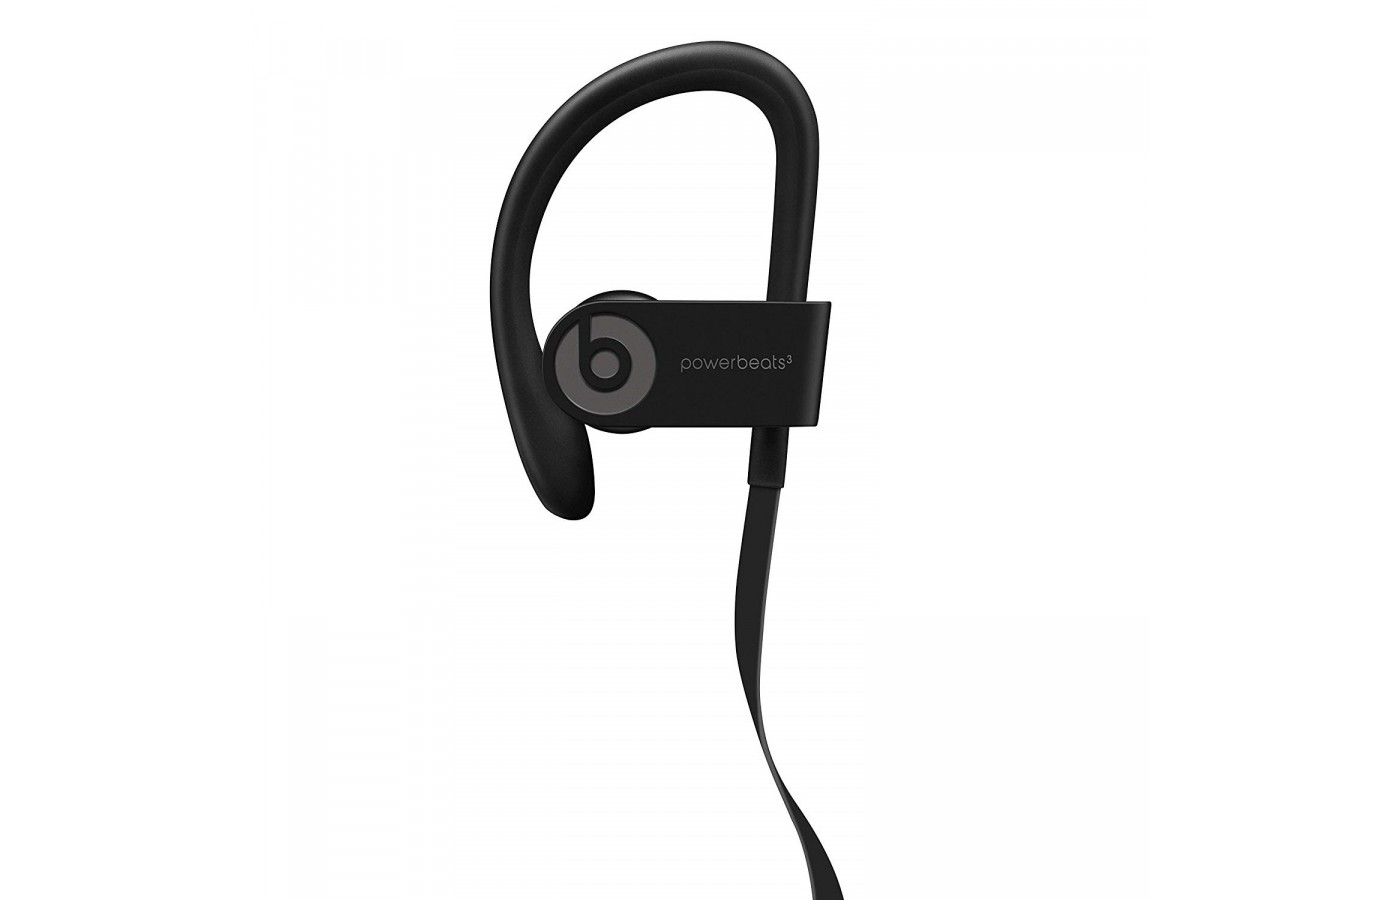 The Beats Powerbeats 3 offer a secure hook to keep the earphones on your ears even when running.